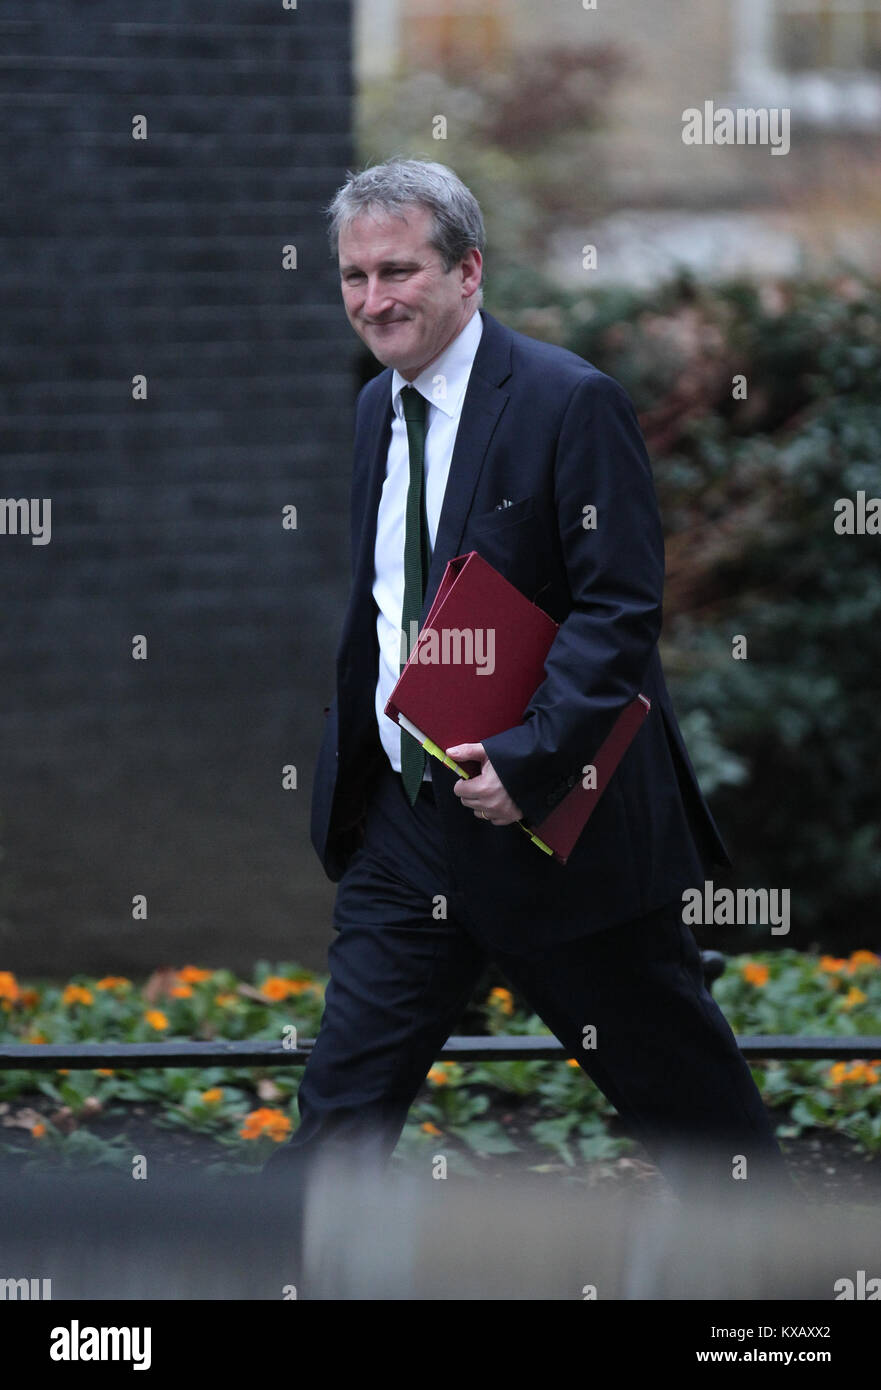 London, UK. 9th Jan, 2018. Damian Hinds MP Secretary of State for Education attends a cabinet meeting at 10 Downing - Stock Image